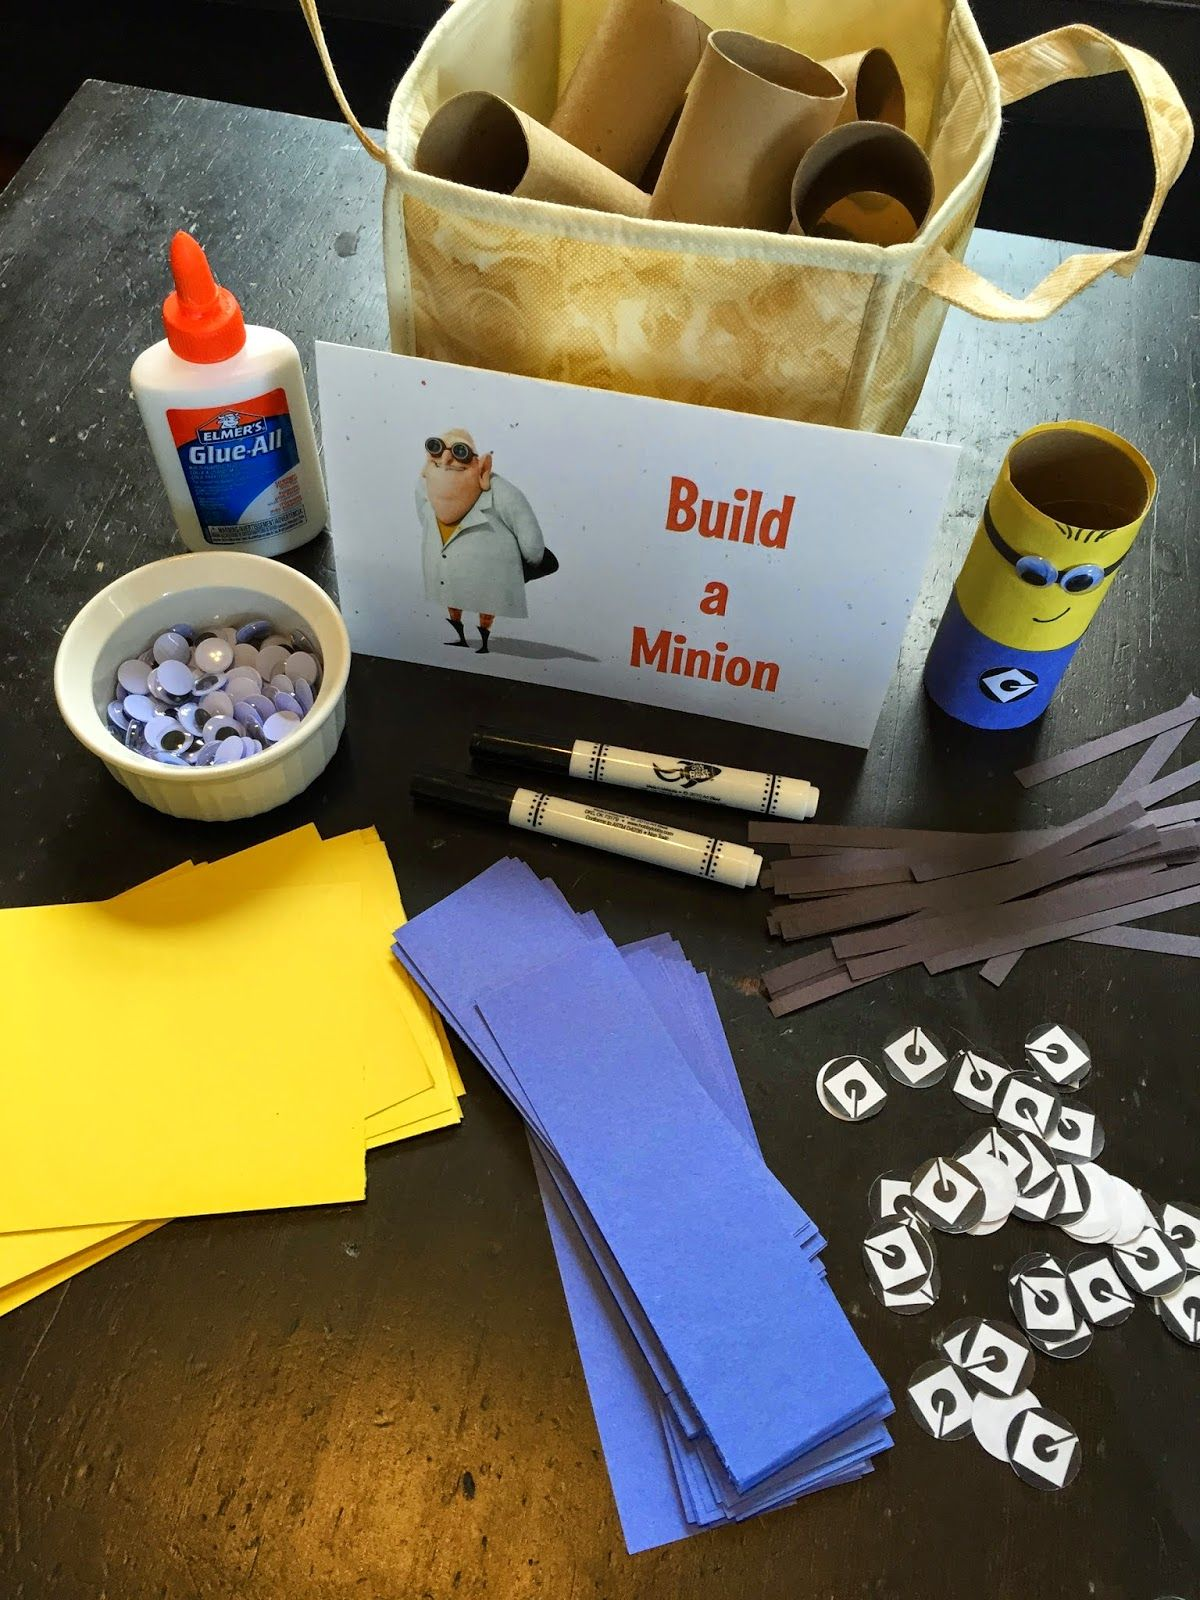 Build a Minion kids craft for a